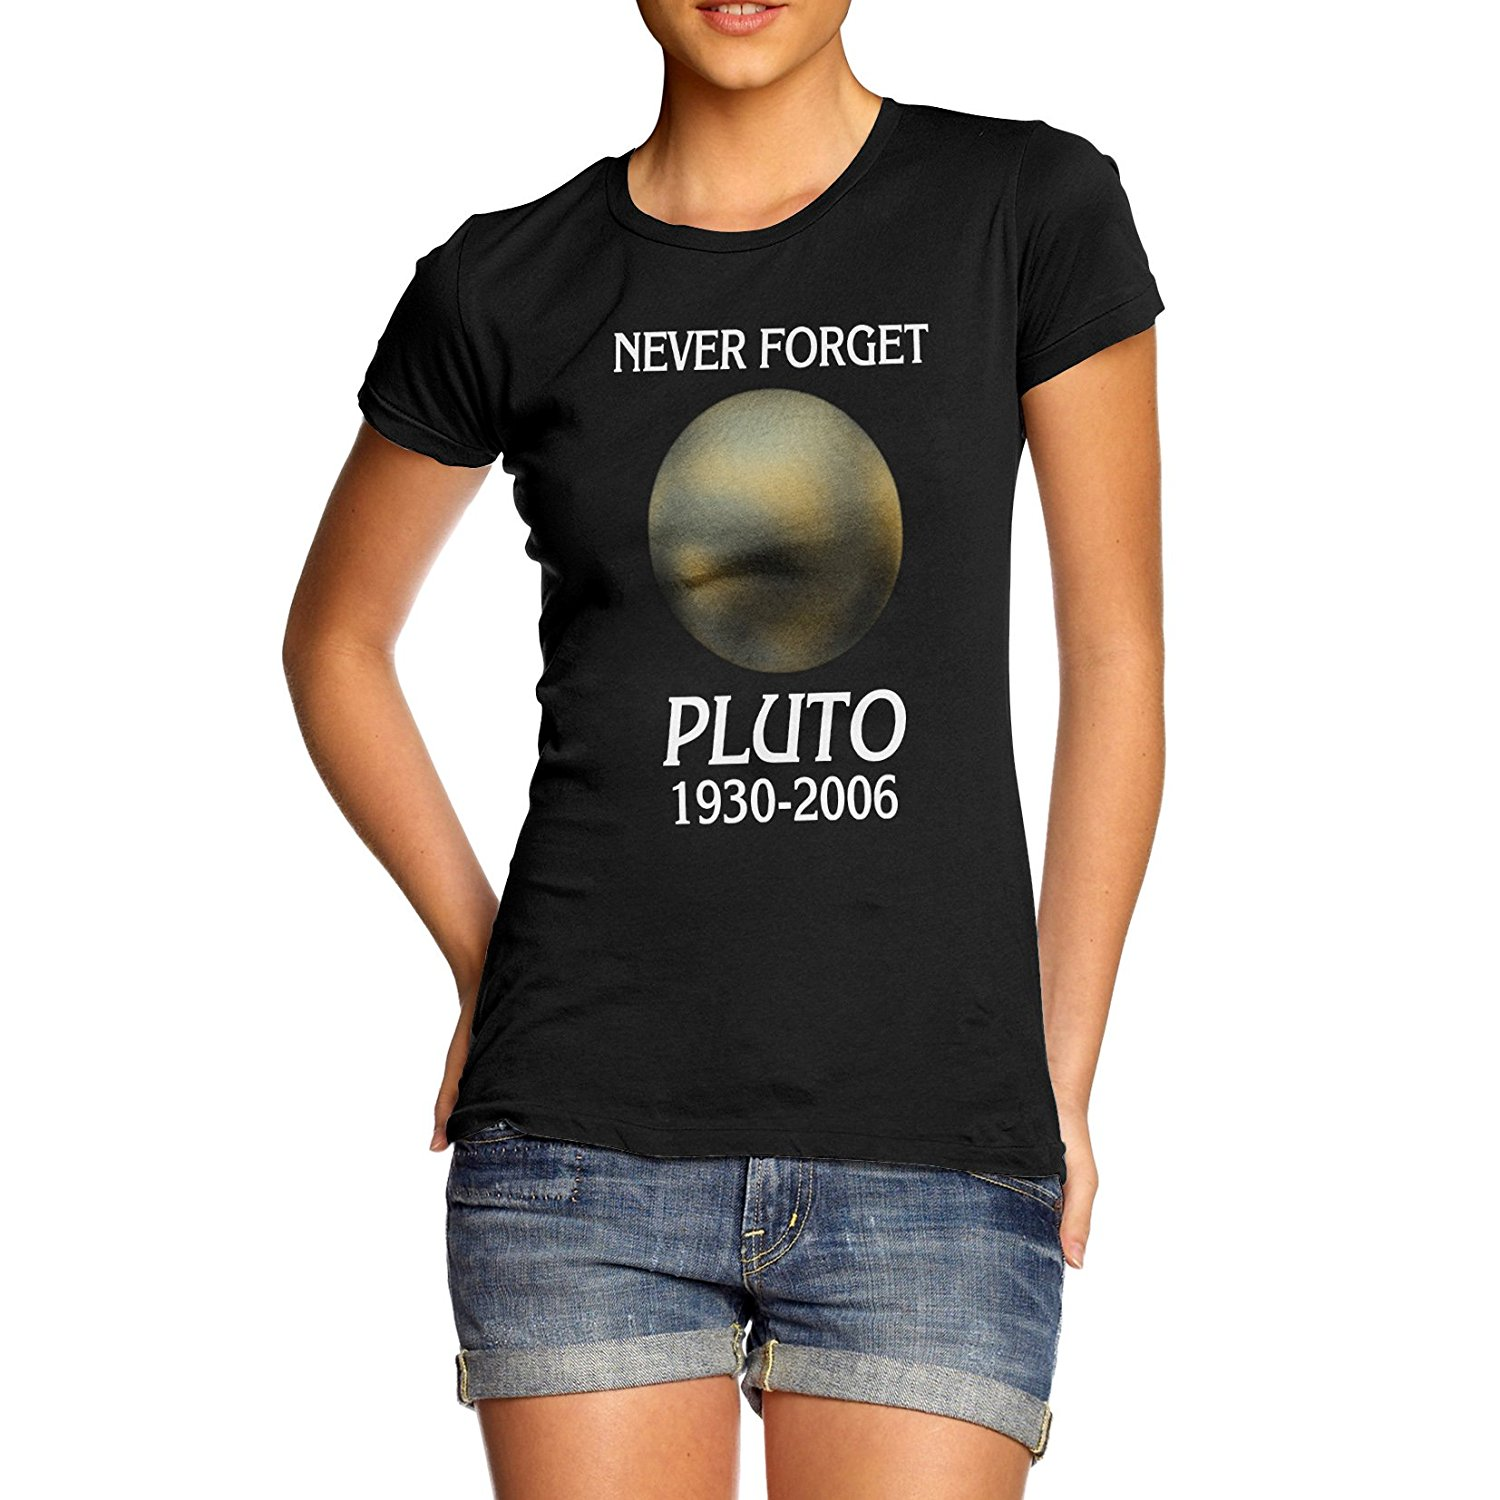 Design your own t shirt ireland